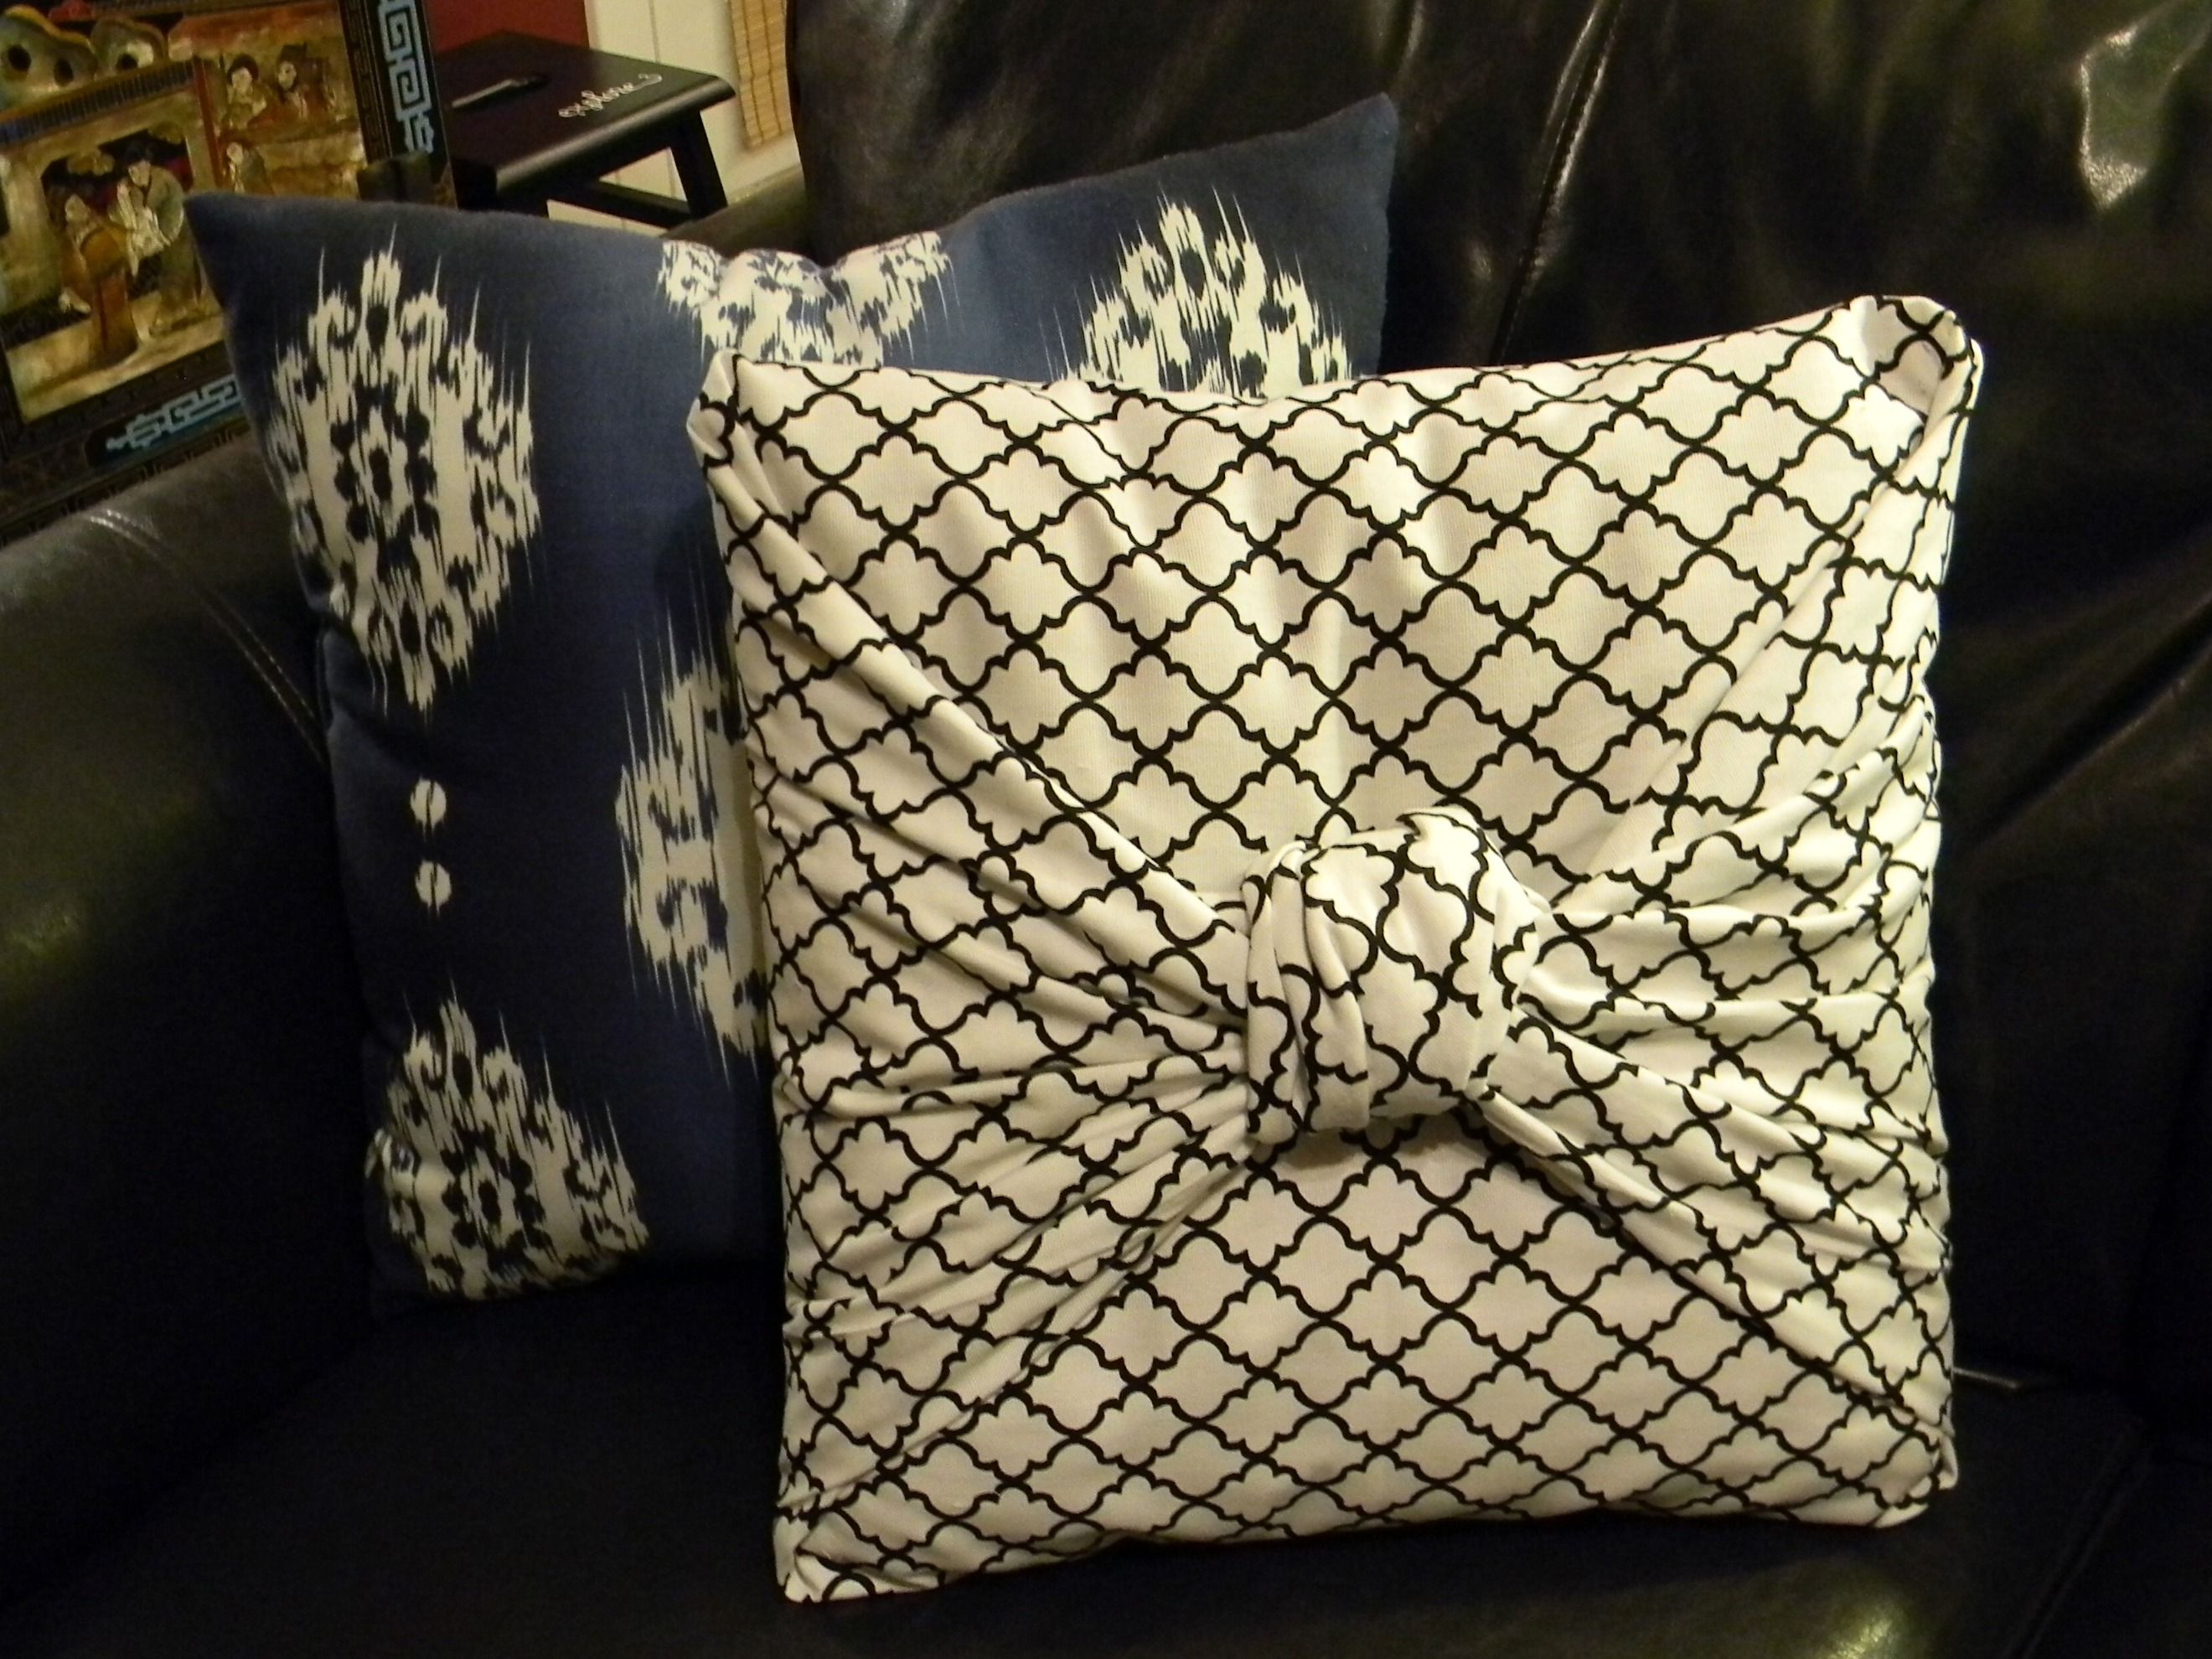 26 Fab Pillow Tutorials & 26 Fab Pillow Tutorials | Sew pillows Pillows and Throw pillows pillowsntoast.com